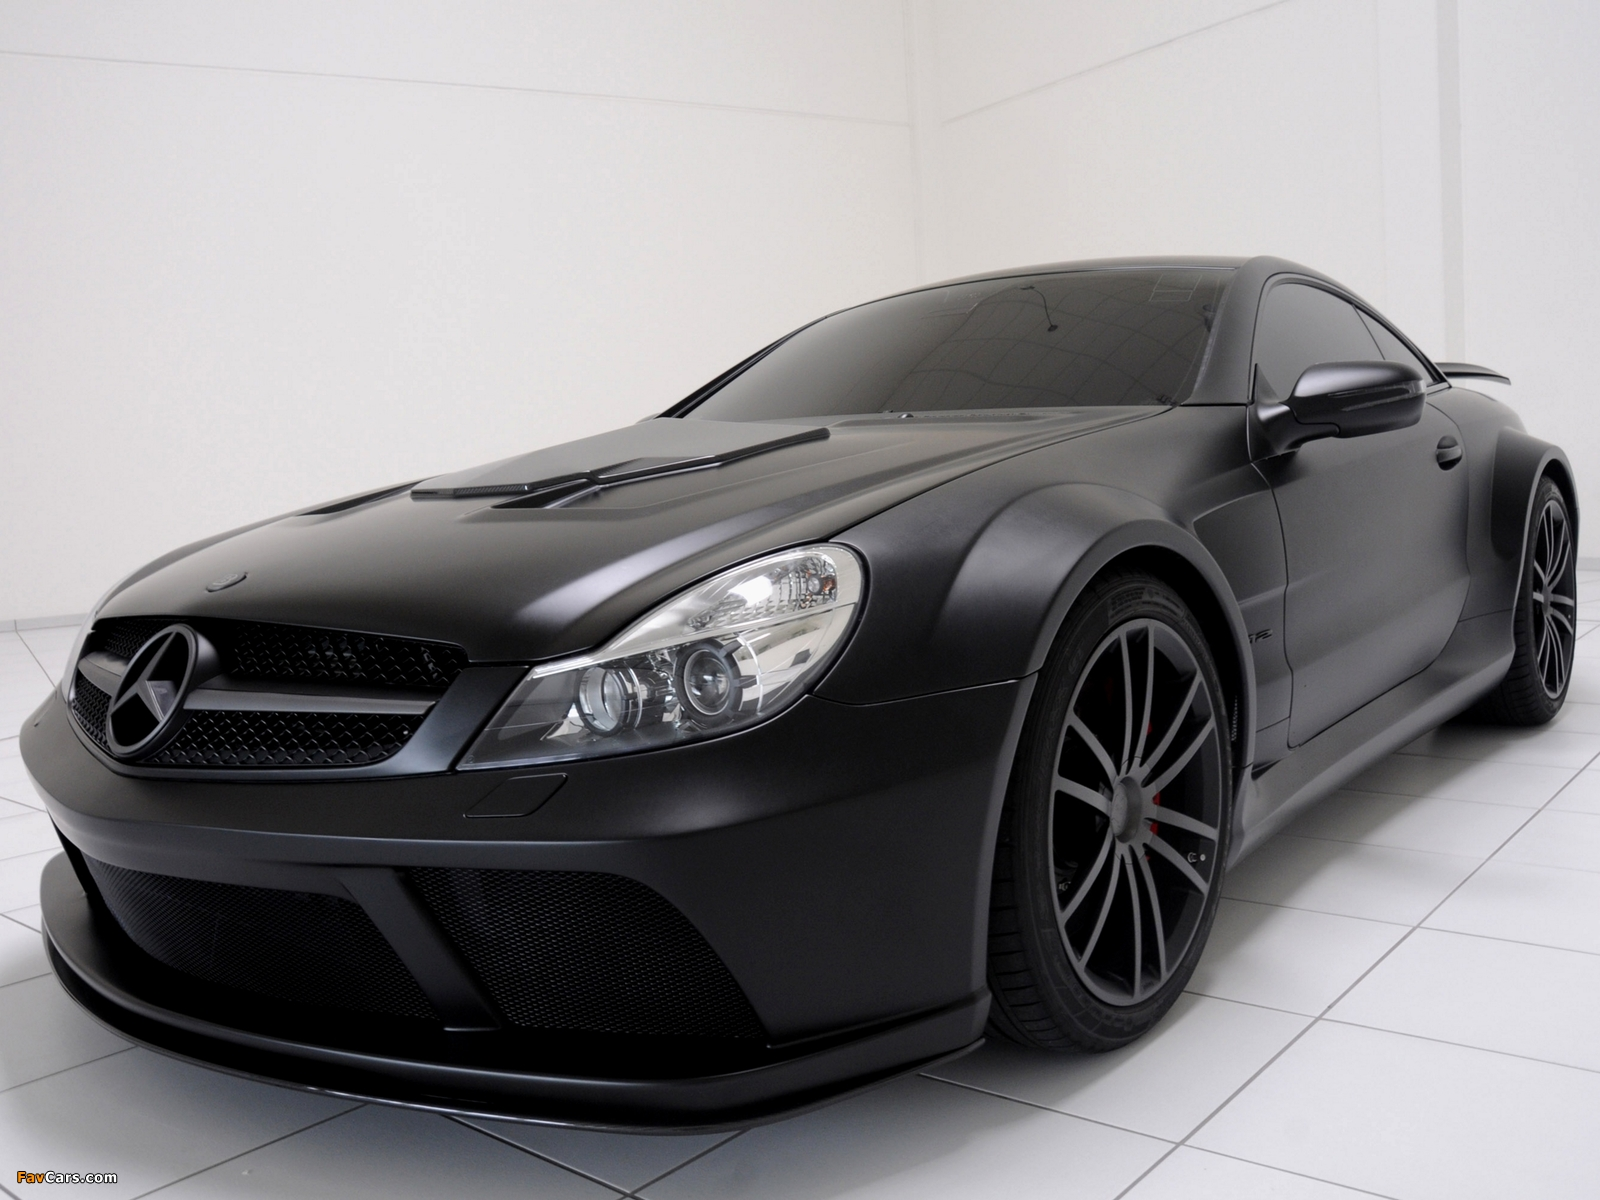 Brabus T65 RS (R230) 2010 images (1600 x 1200)